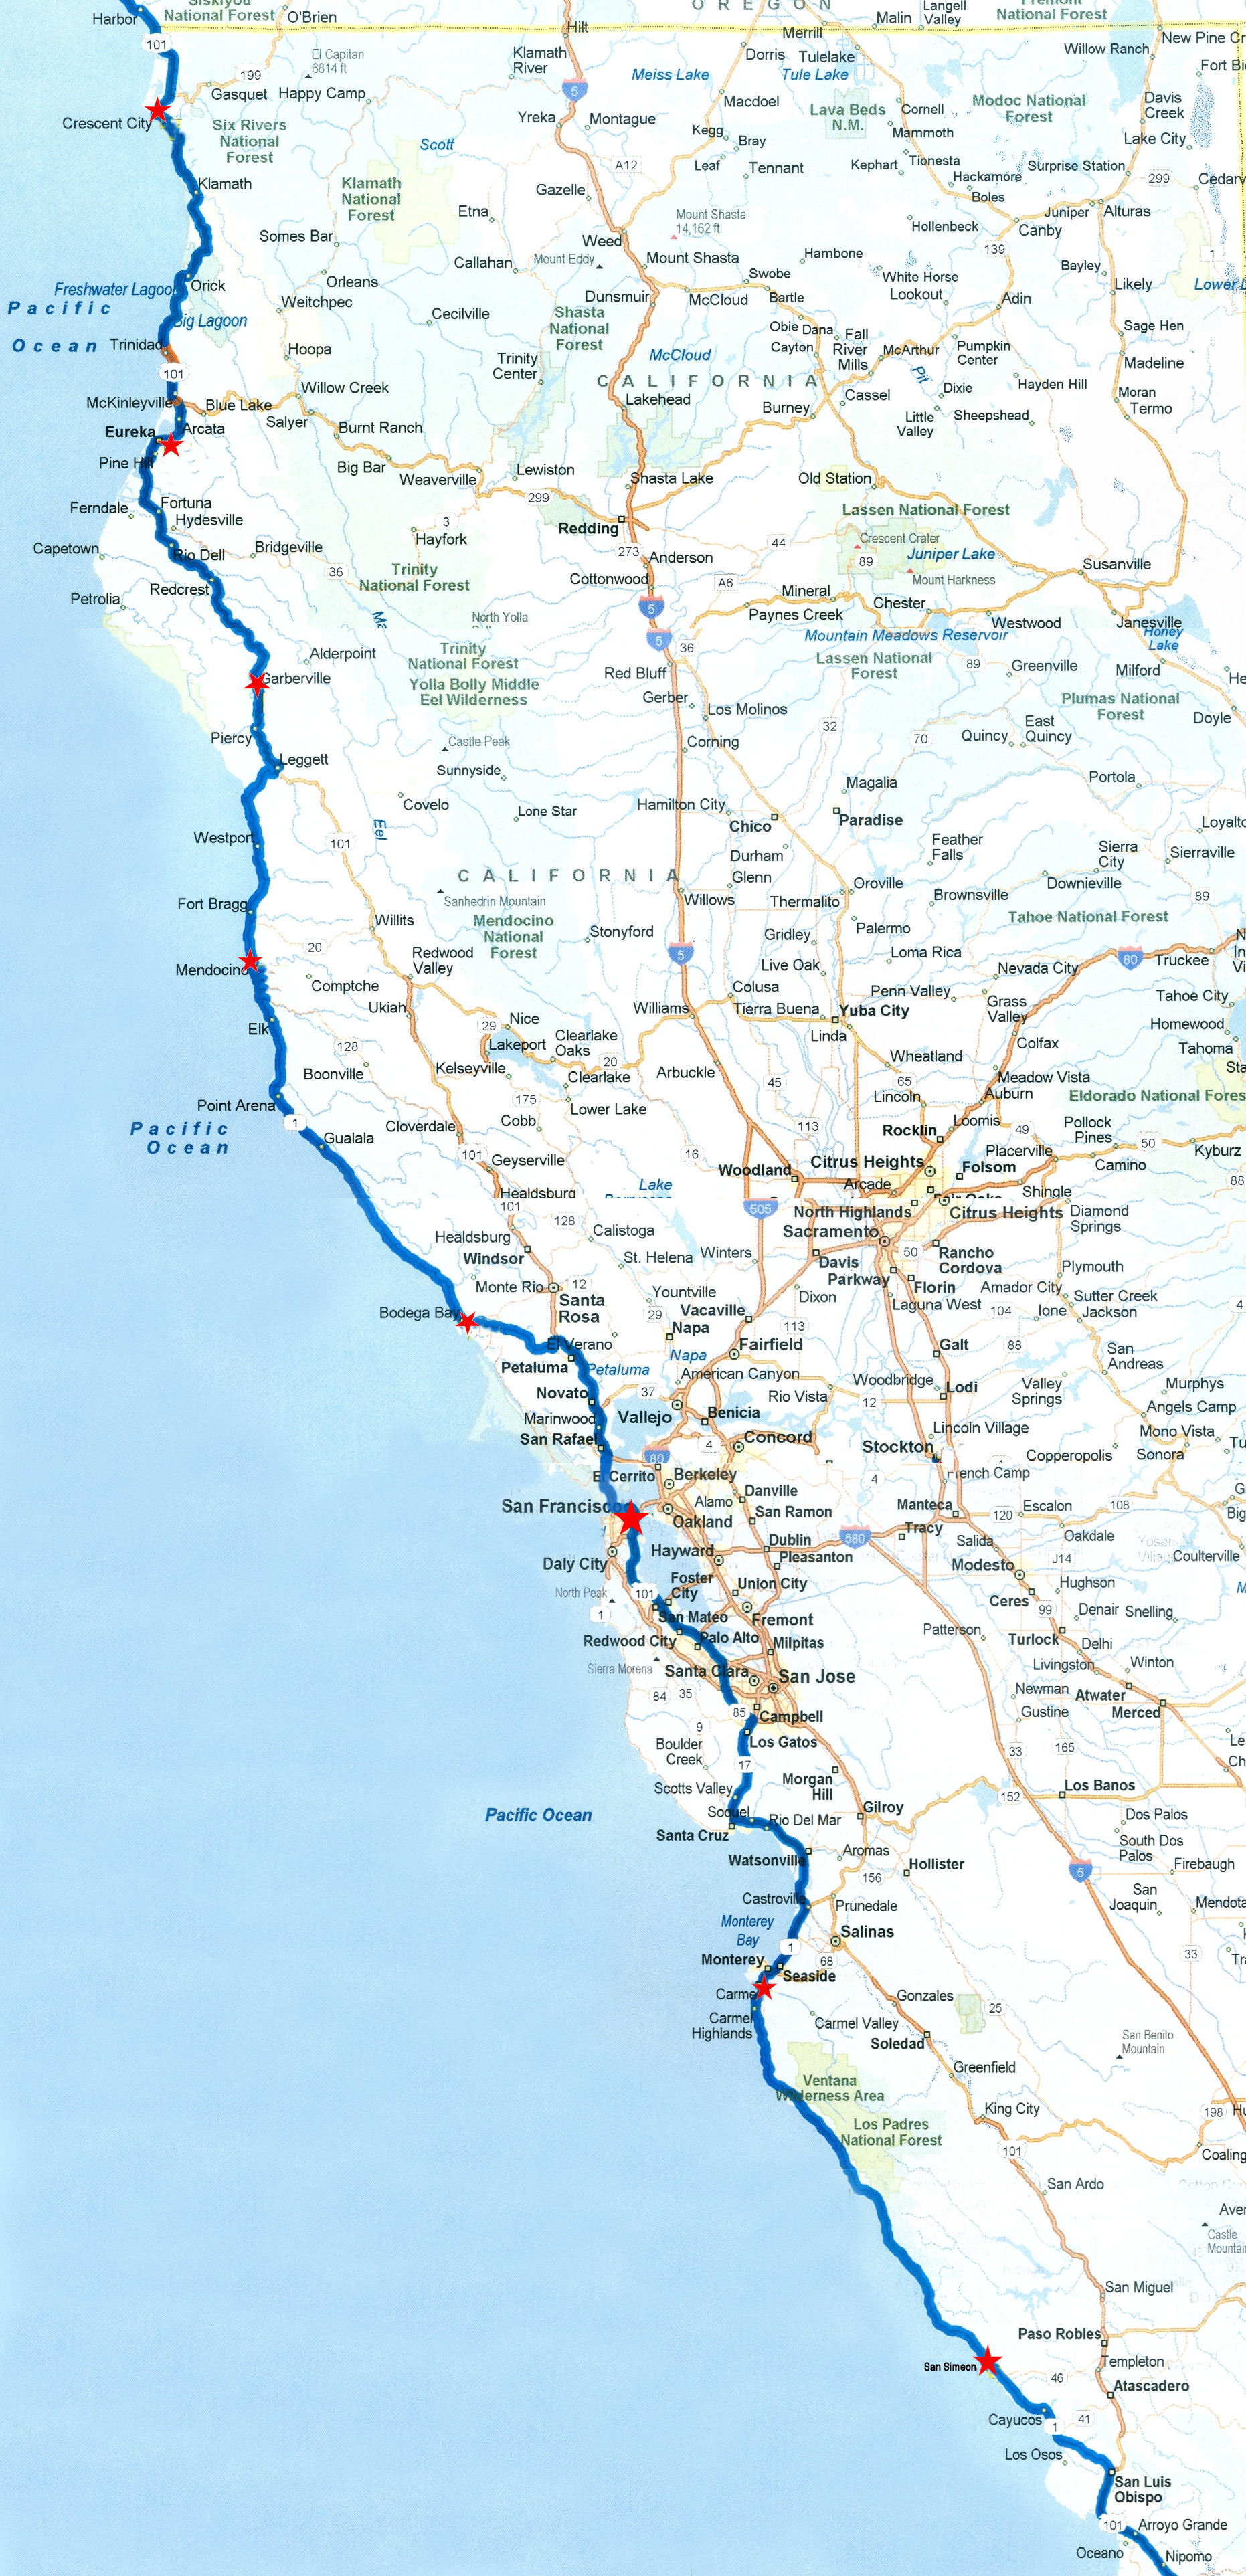 Detailed Map Of California Coast - Klipy - Road Map Of California Coast